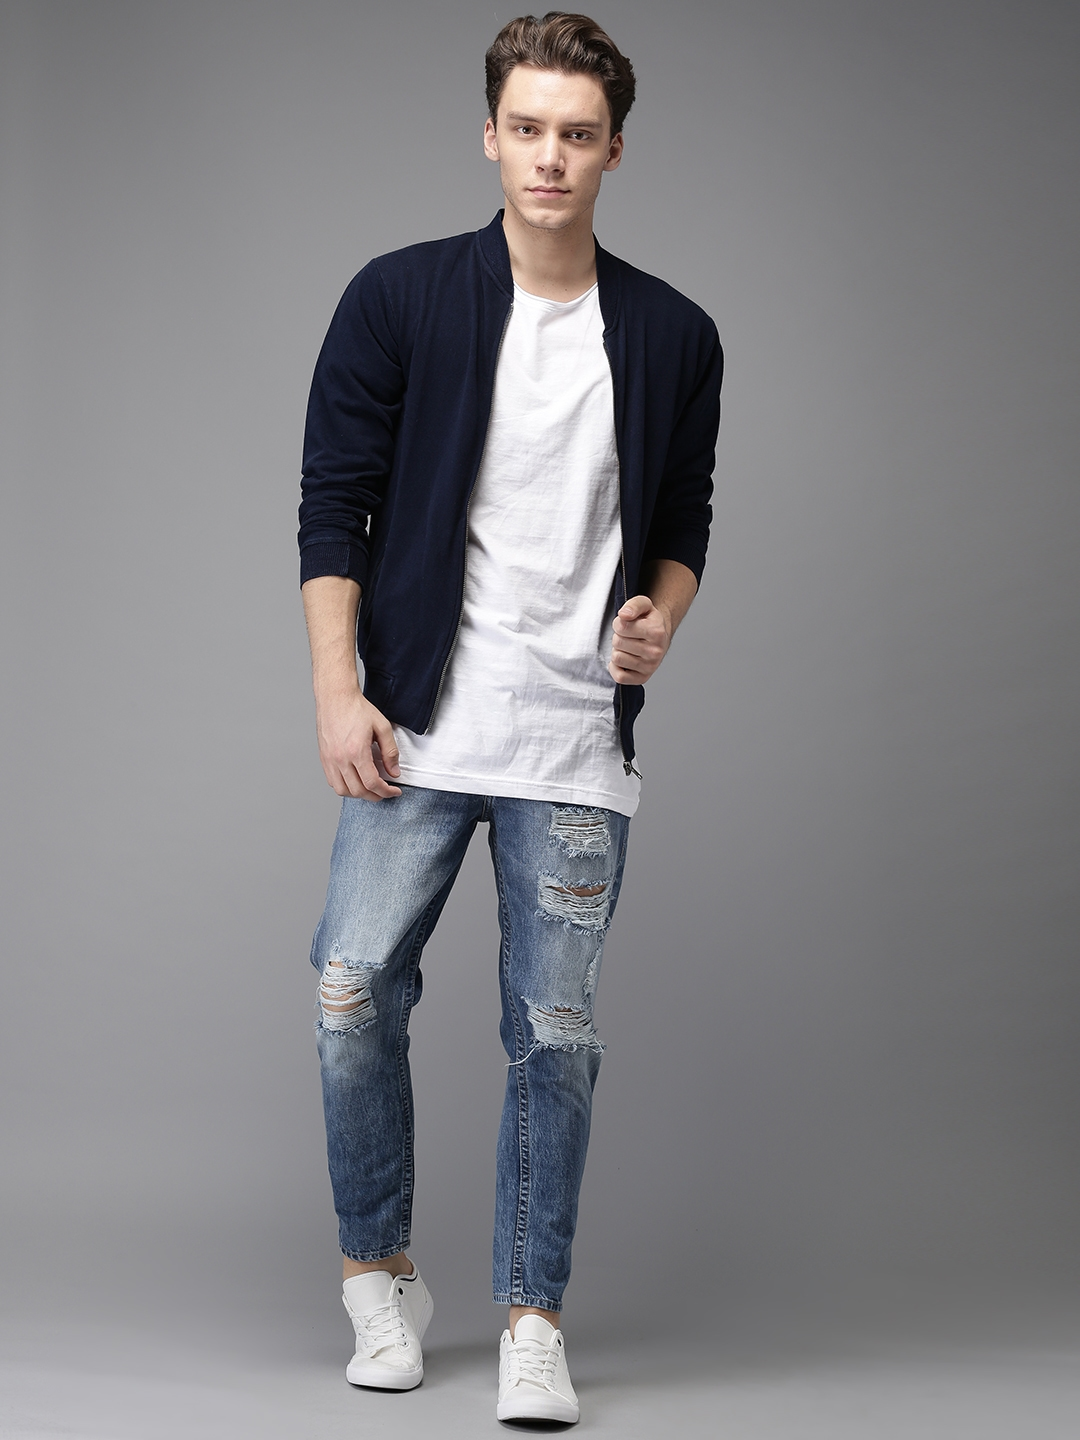 Kind To Raveitsafe What With Shirt Wear Distressed Jeans Of BoCedx